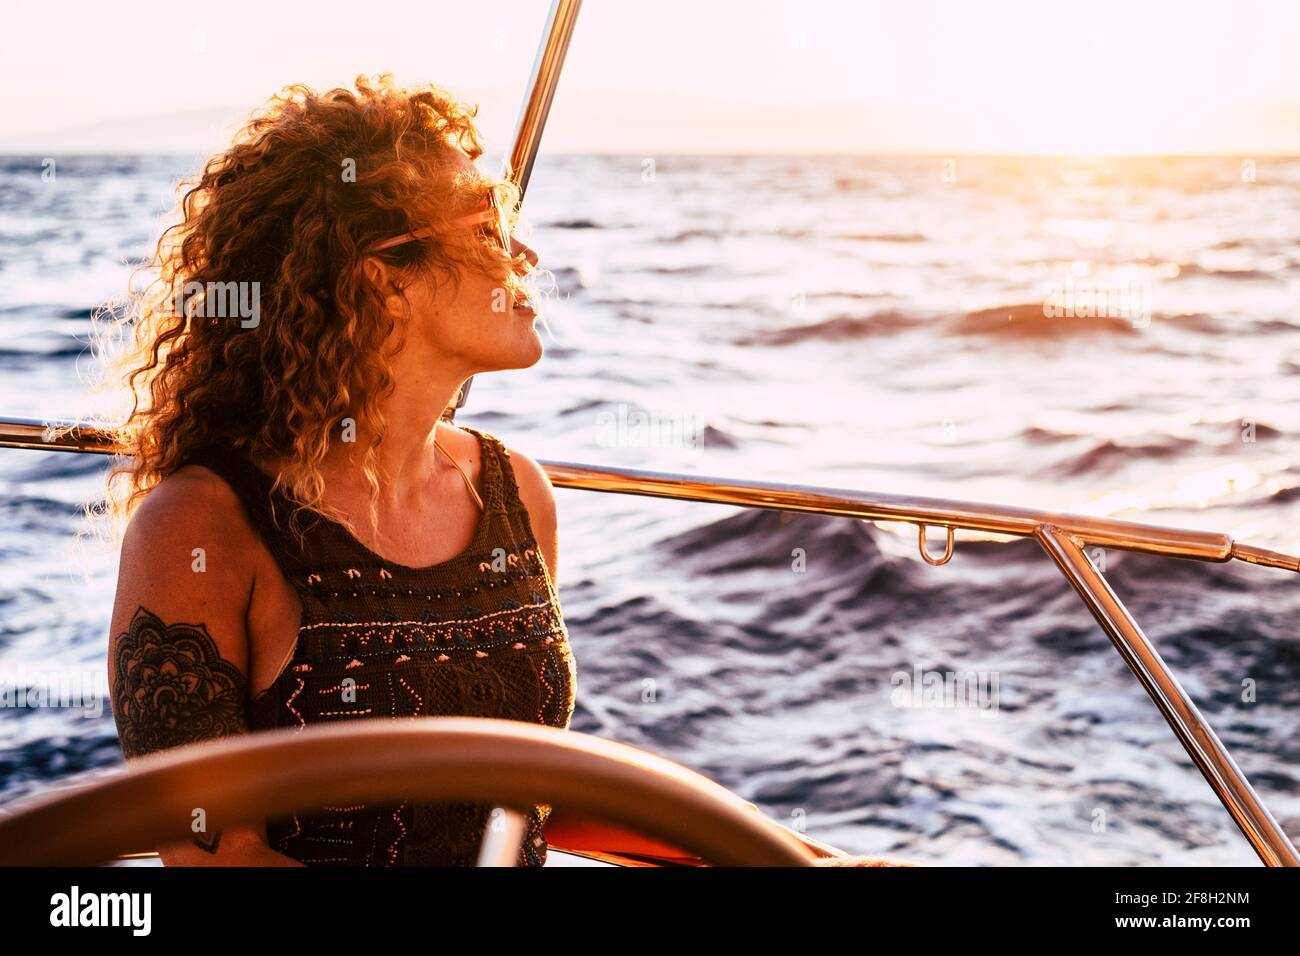 Adult rich woman enjoy luxury lifestyle traveling on sailboat yacht for summer holiday vacation - pretty female people outdoor freedom with ocean sea Stock Photo